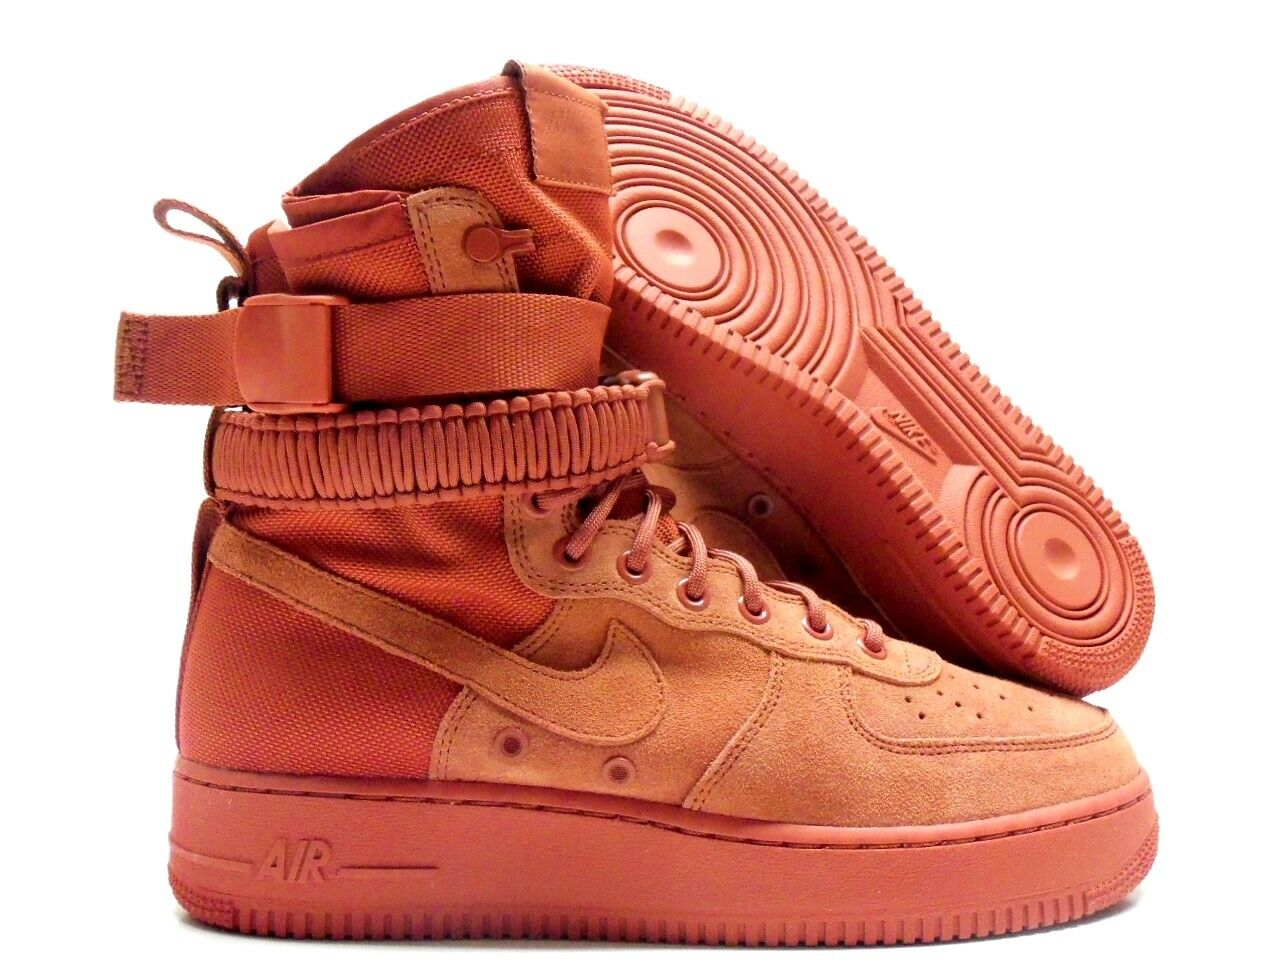 NIKE SF AF1 AIR FORCE 1 SPECIAL FIELD DUSTY PEACH SIZE MEN'S 10 [864024-204]